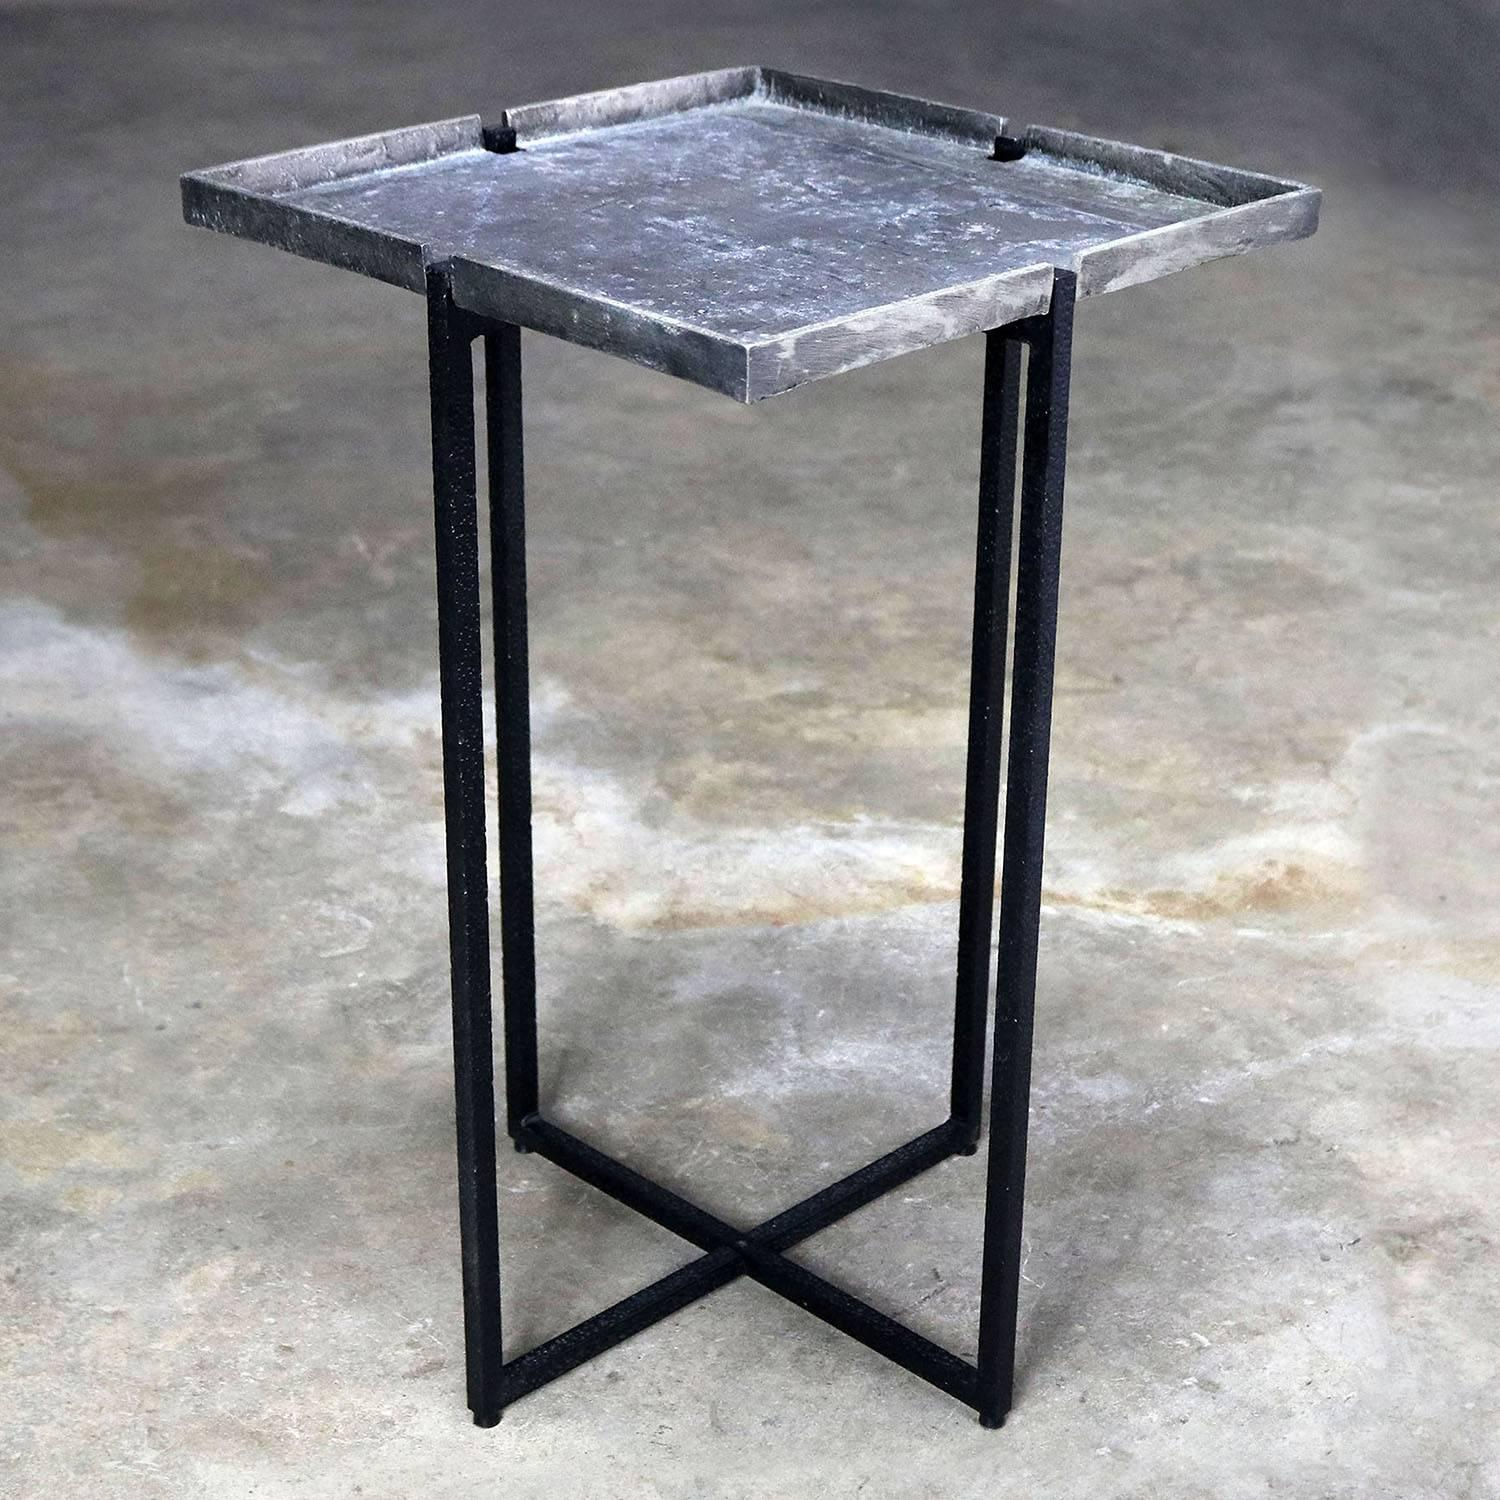 Michael Aram Square Side Table Black Iron and Silvered Bronze with ...